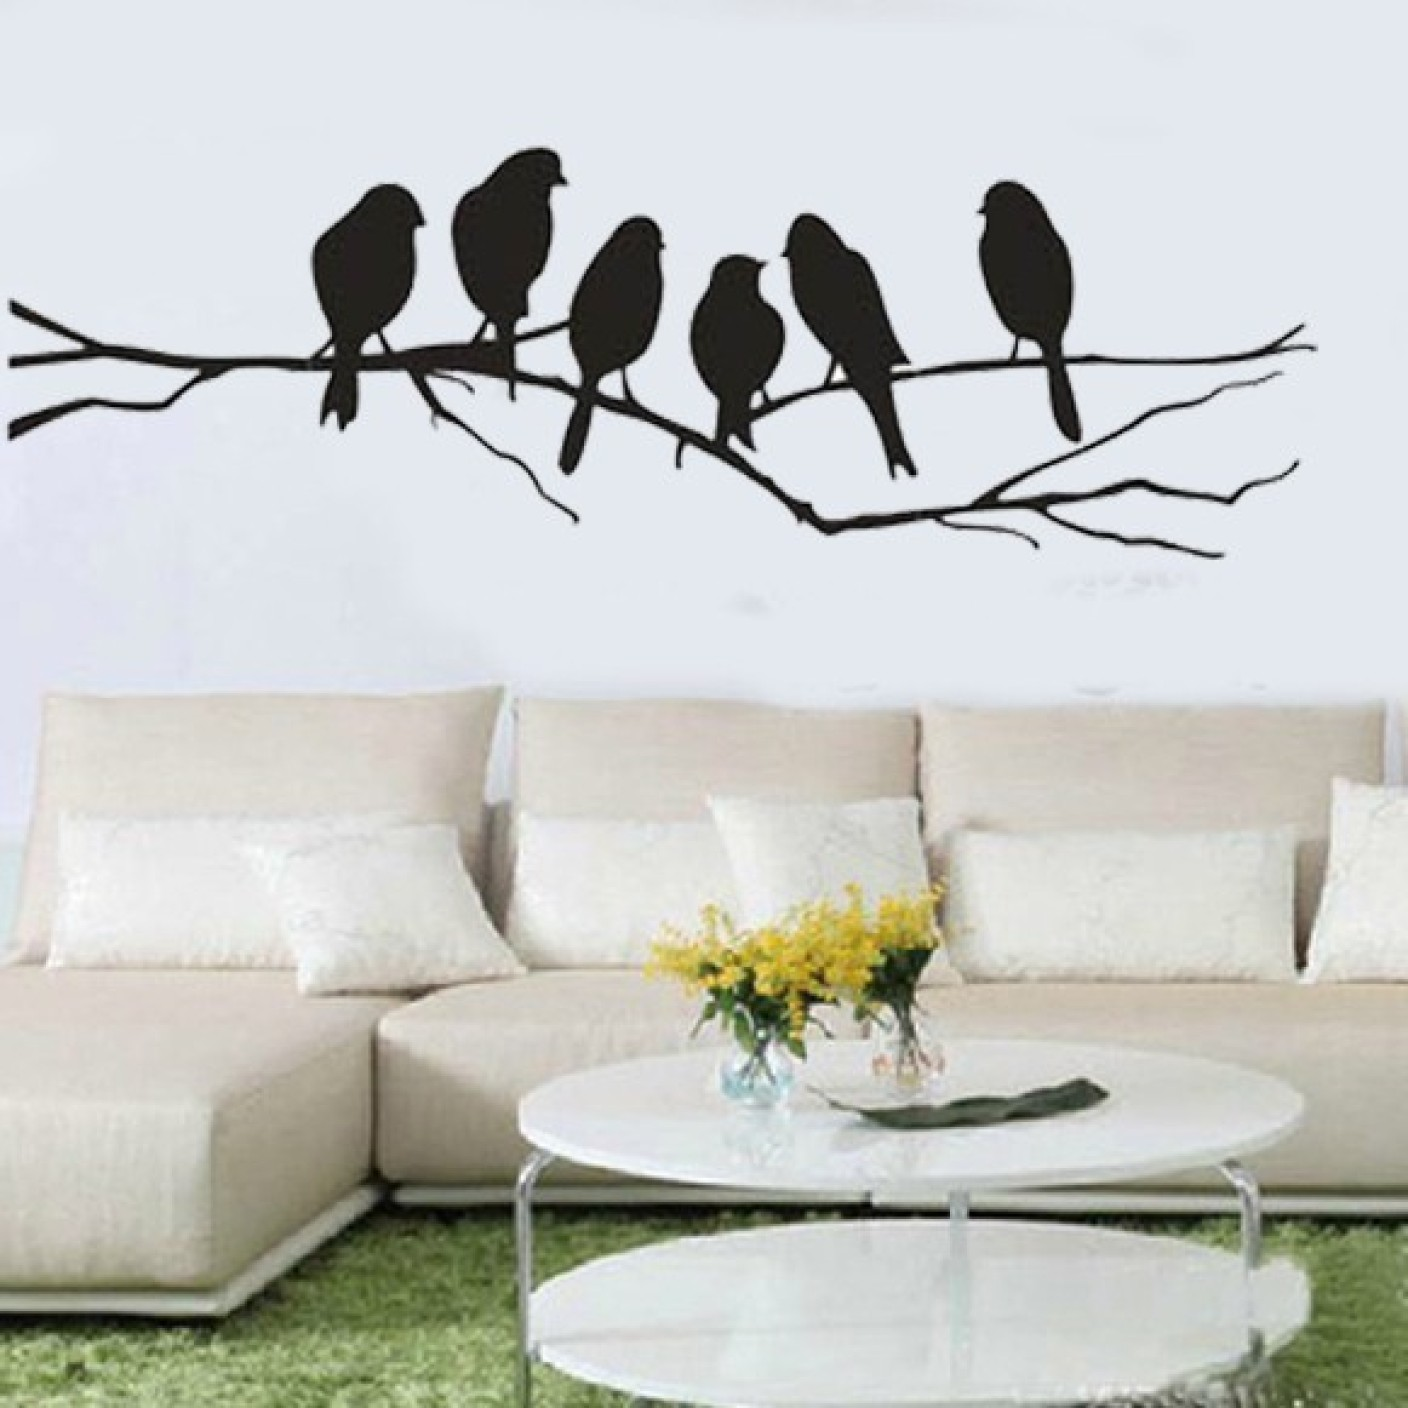 Happy walls birds on a branch silhouette art price in india buy on offer amipublicfo Image collections